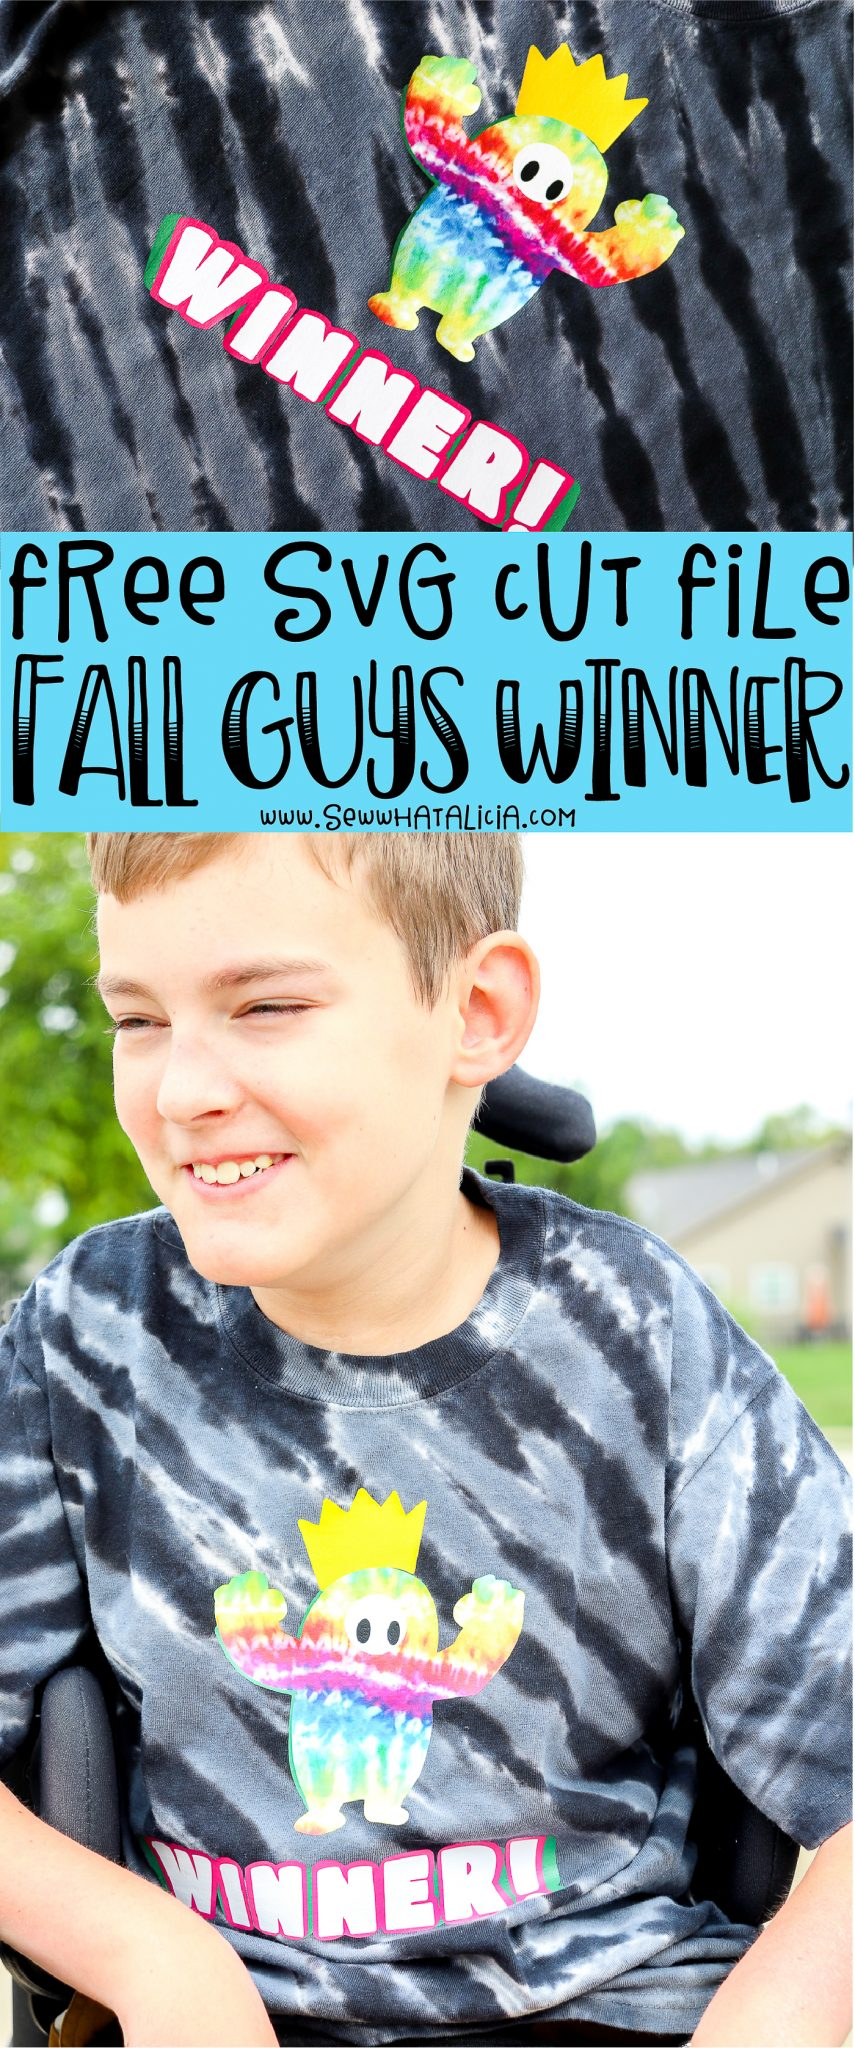 pictured boy in wheelchair with black tie dye shirt that reads winner. shirt also has a tie dye character from the game fall guys text overlay reads free fall guys cut file